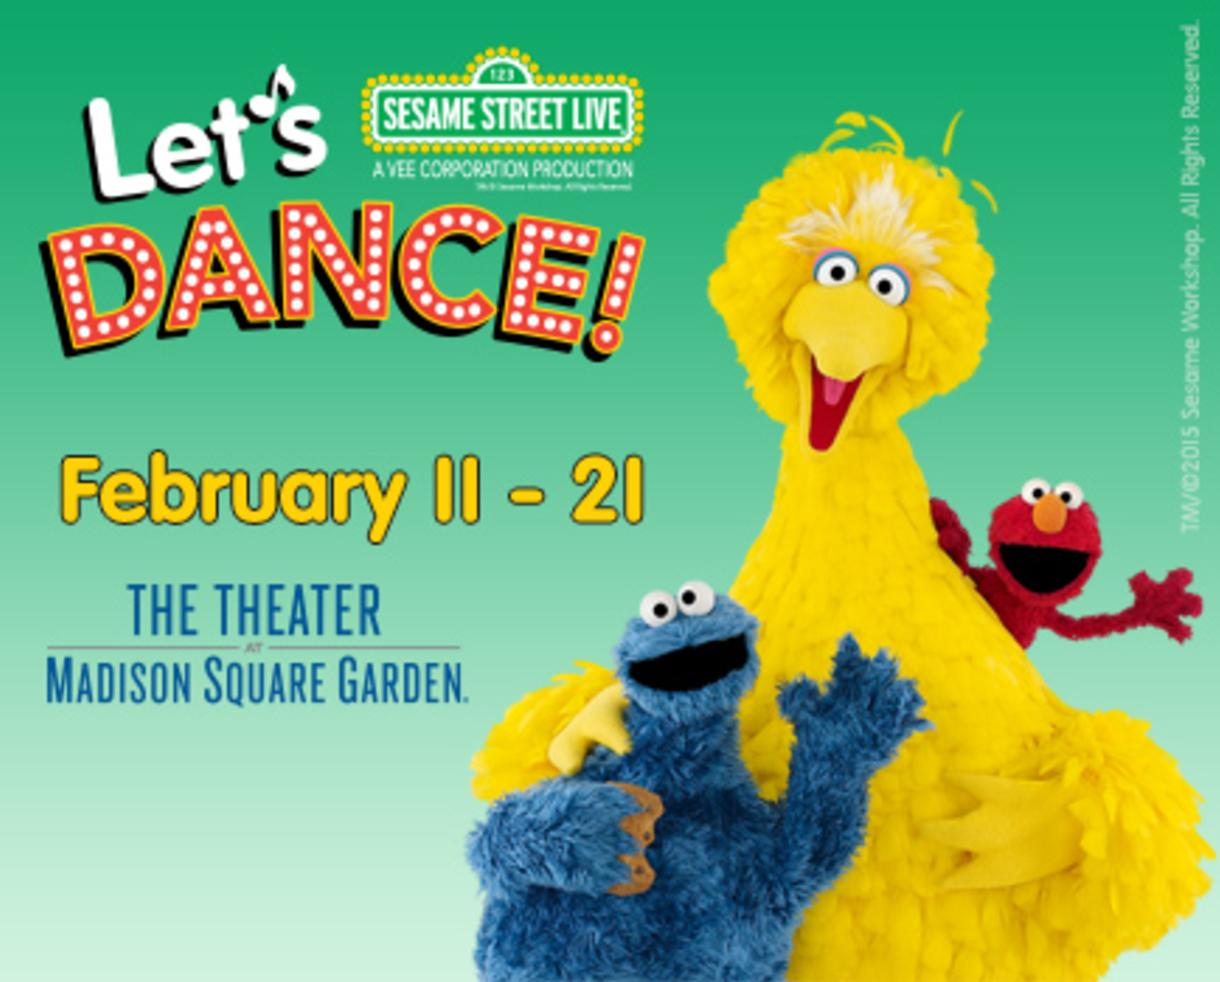 Deal Save Up To 35 To See Sesame Street Live 39 S Let 39 S Dance At The Theater At Madison Square